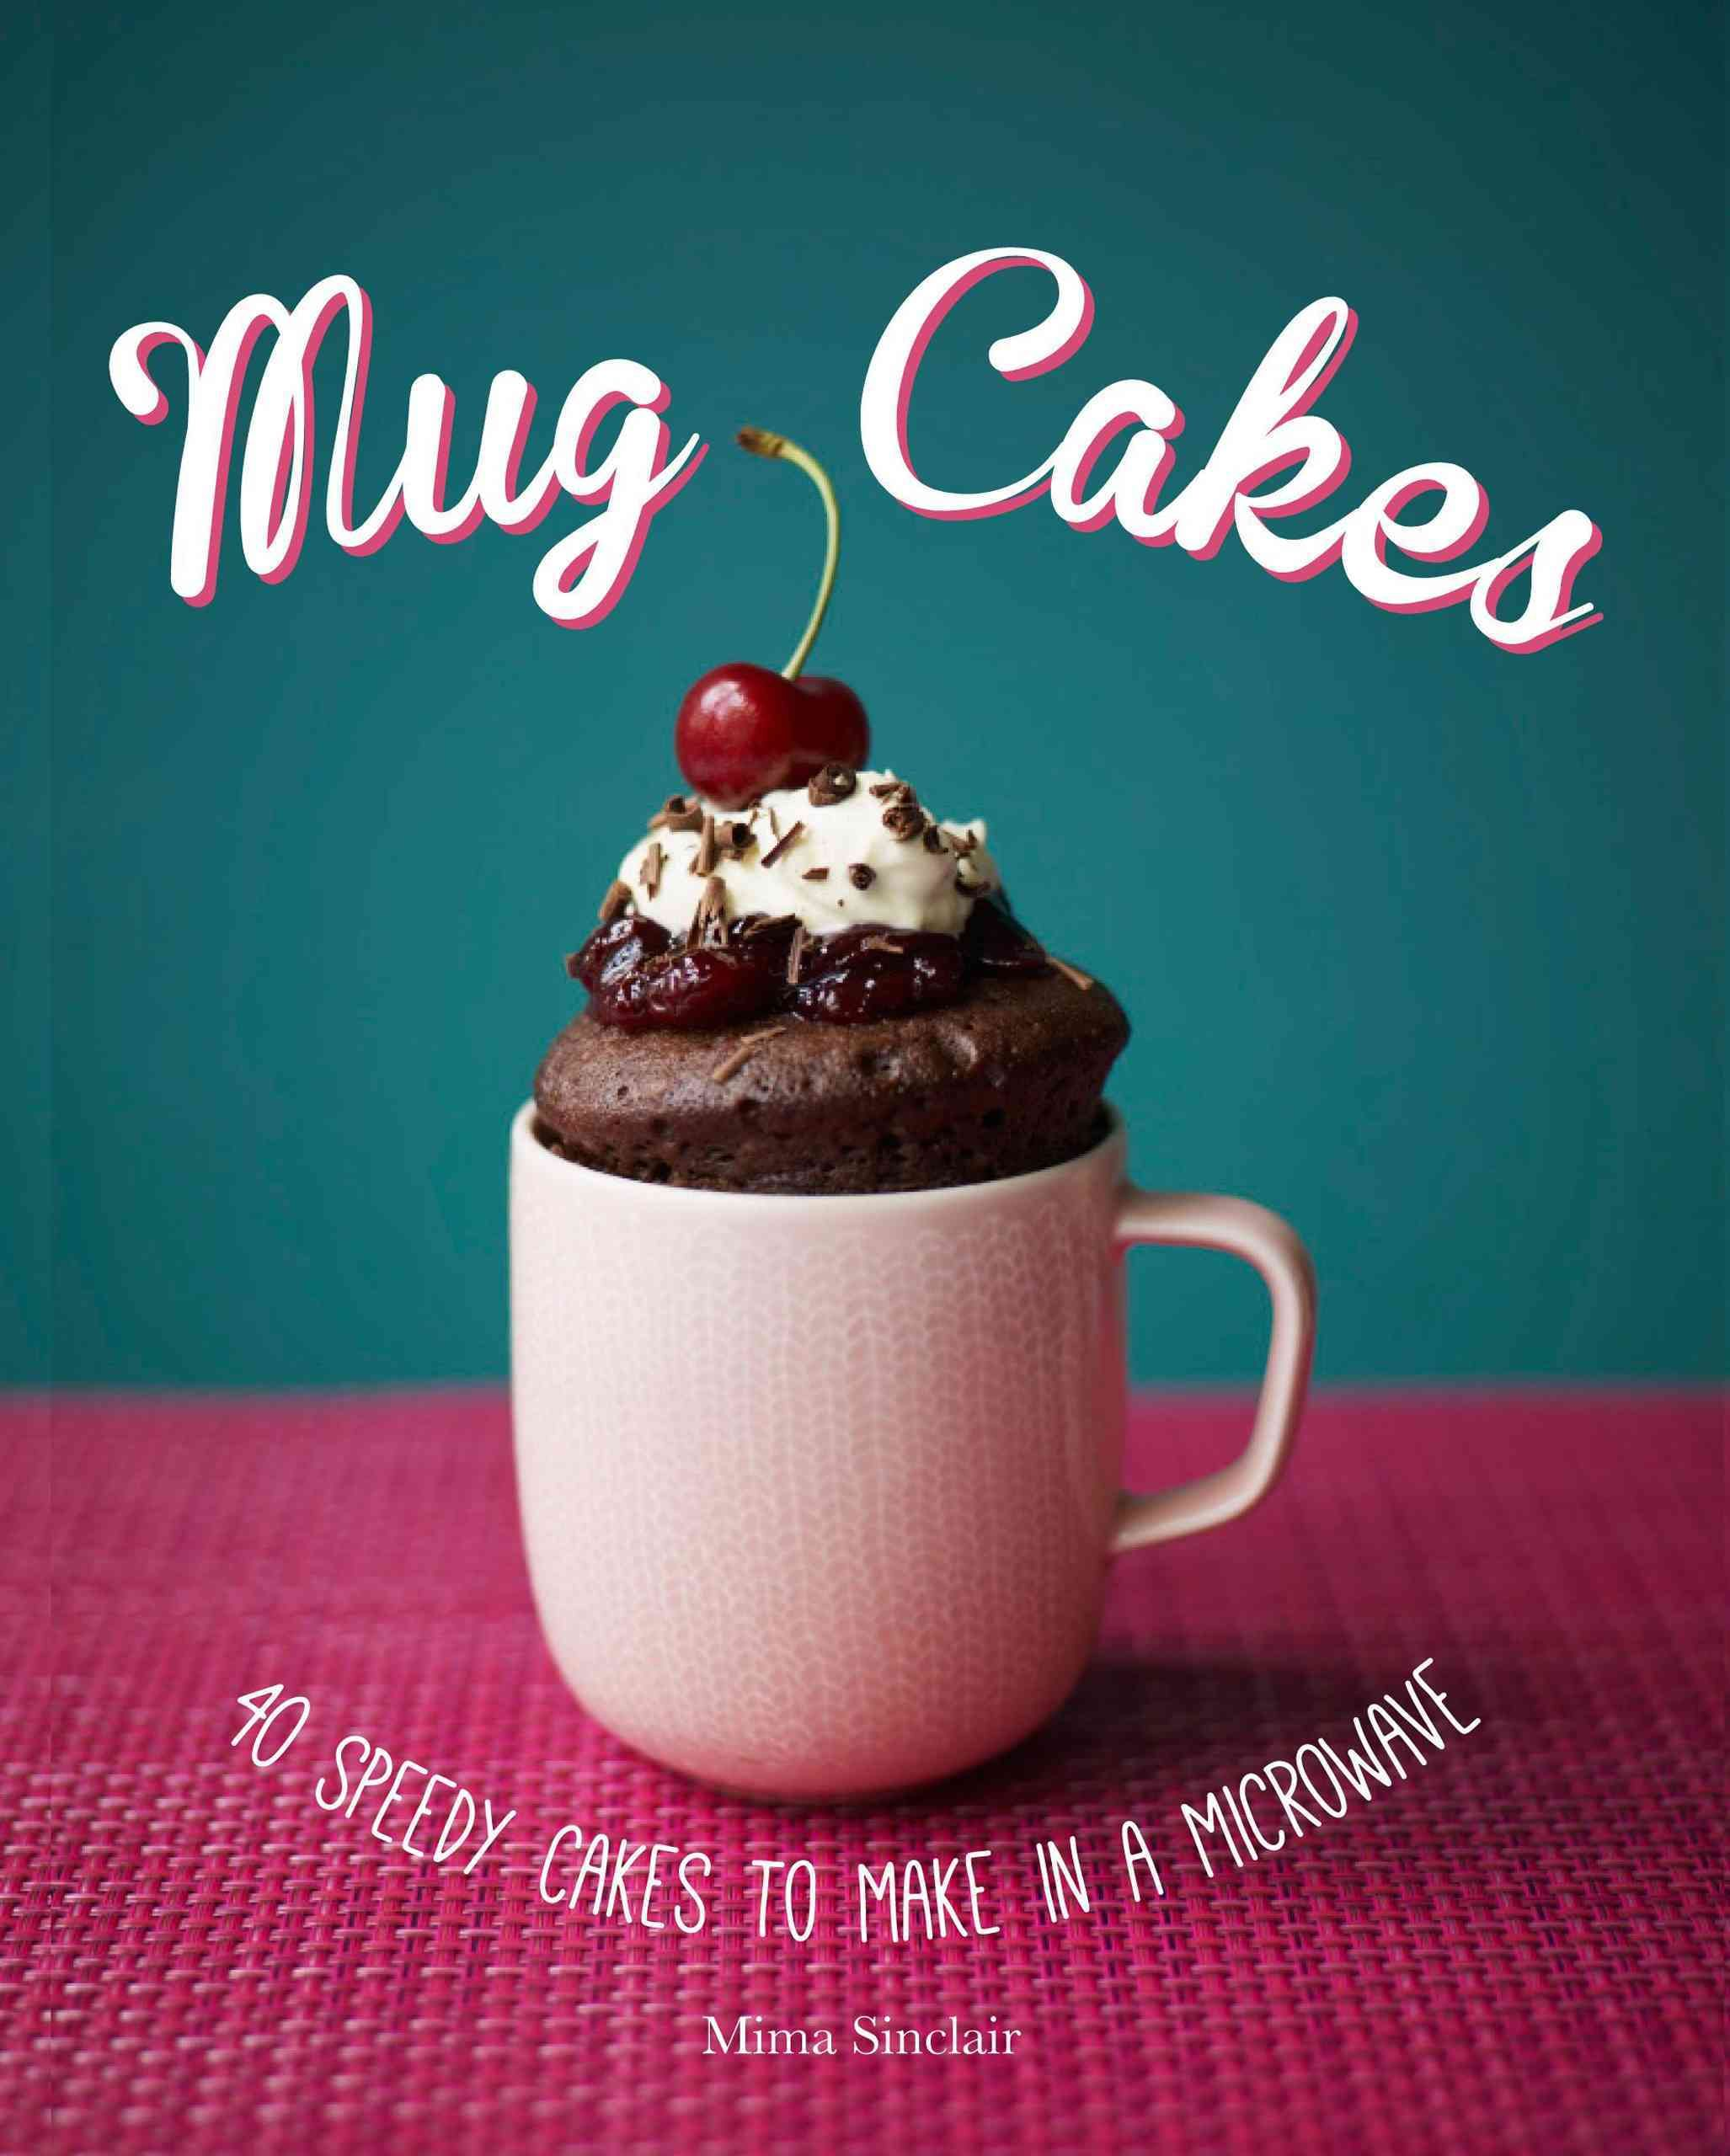 A delicious cake you make in a mug, in a microwave, in